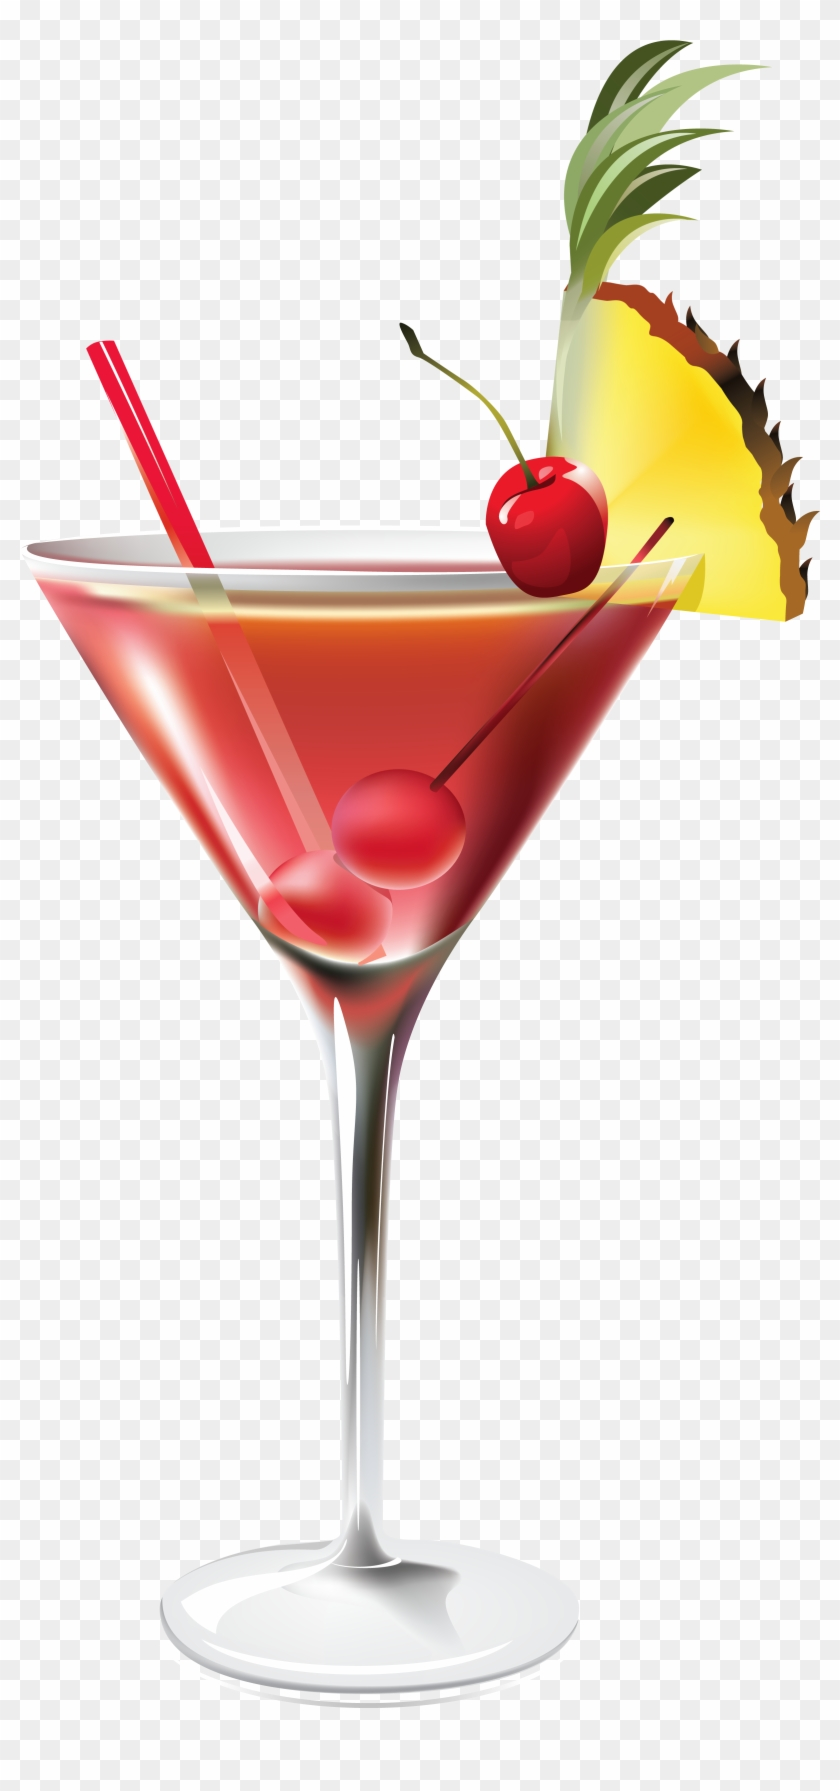 Cocktail with pineapple png. Cocktails clipart classic